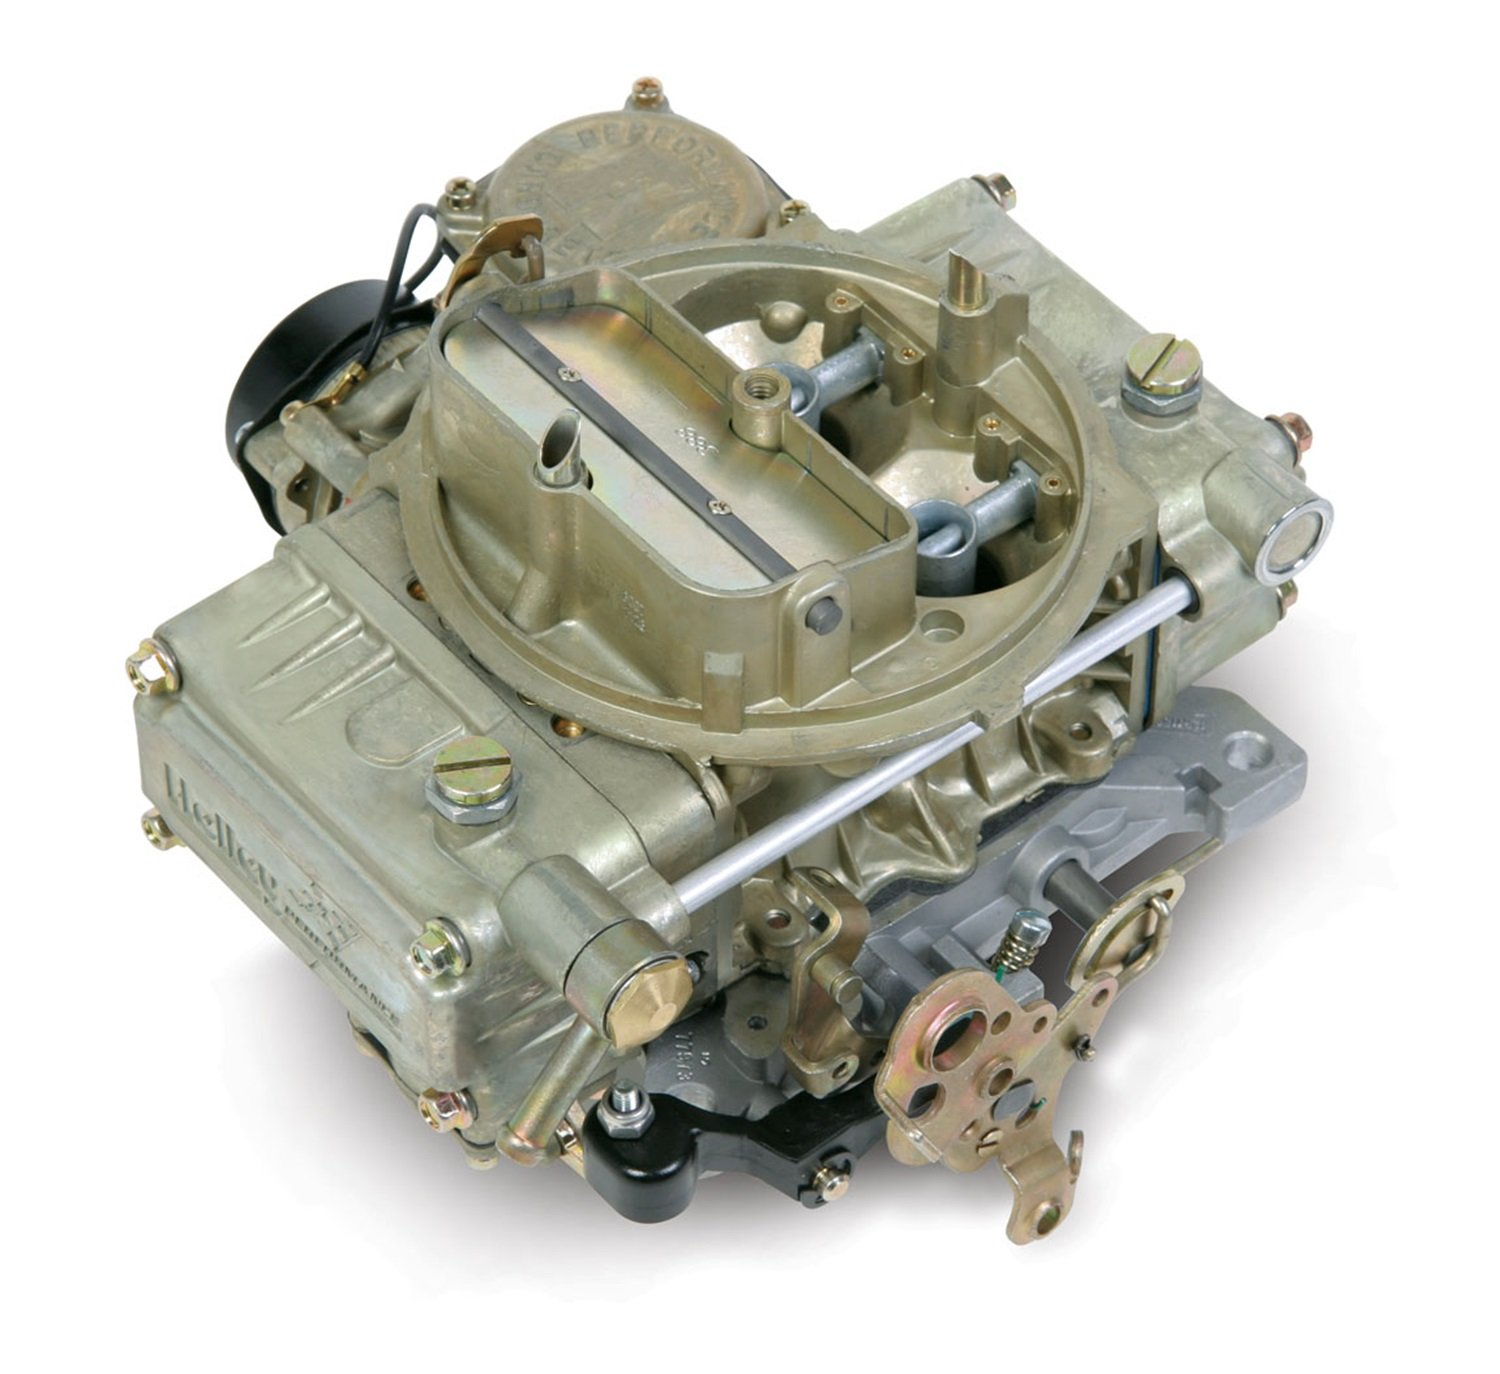 Cheap Electric Choke Wiring Find Deals On 89 Honda Elite Get Quotations Holley 0 8007 Model 4160 390 Cfm Square Bore 4 Barrel Vacuum Secondary